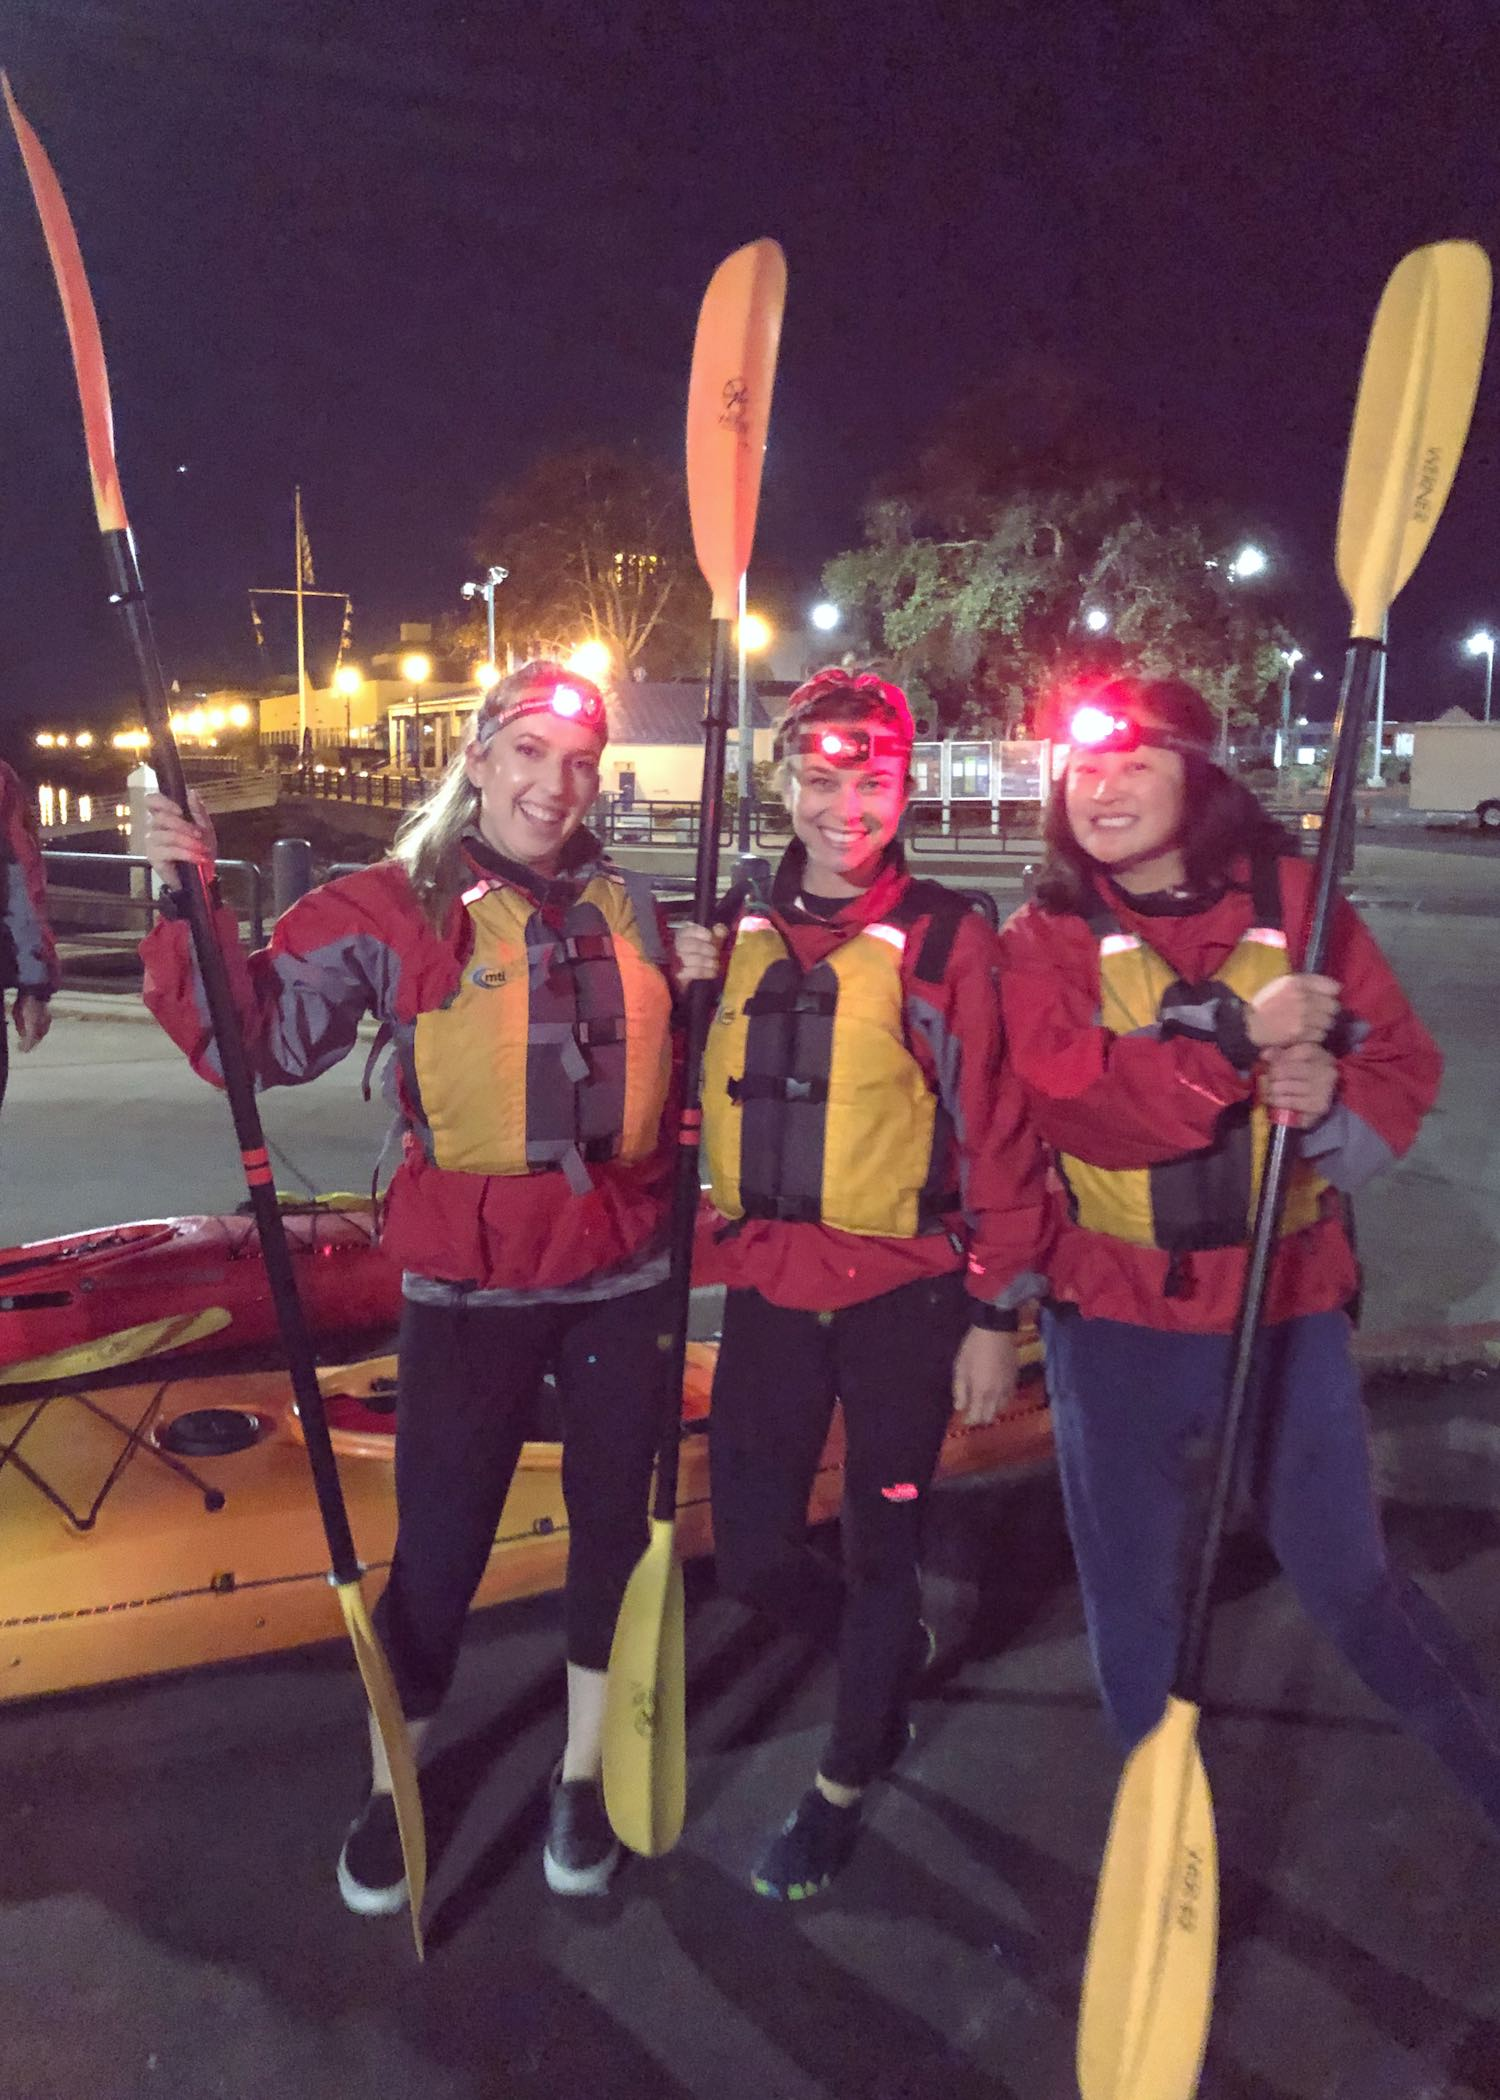 REI Outdoor School Night Kayaking Class